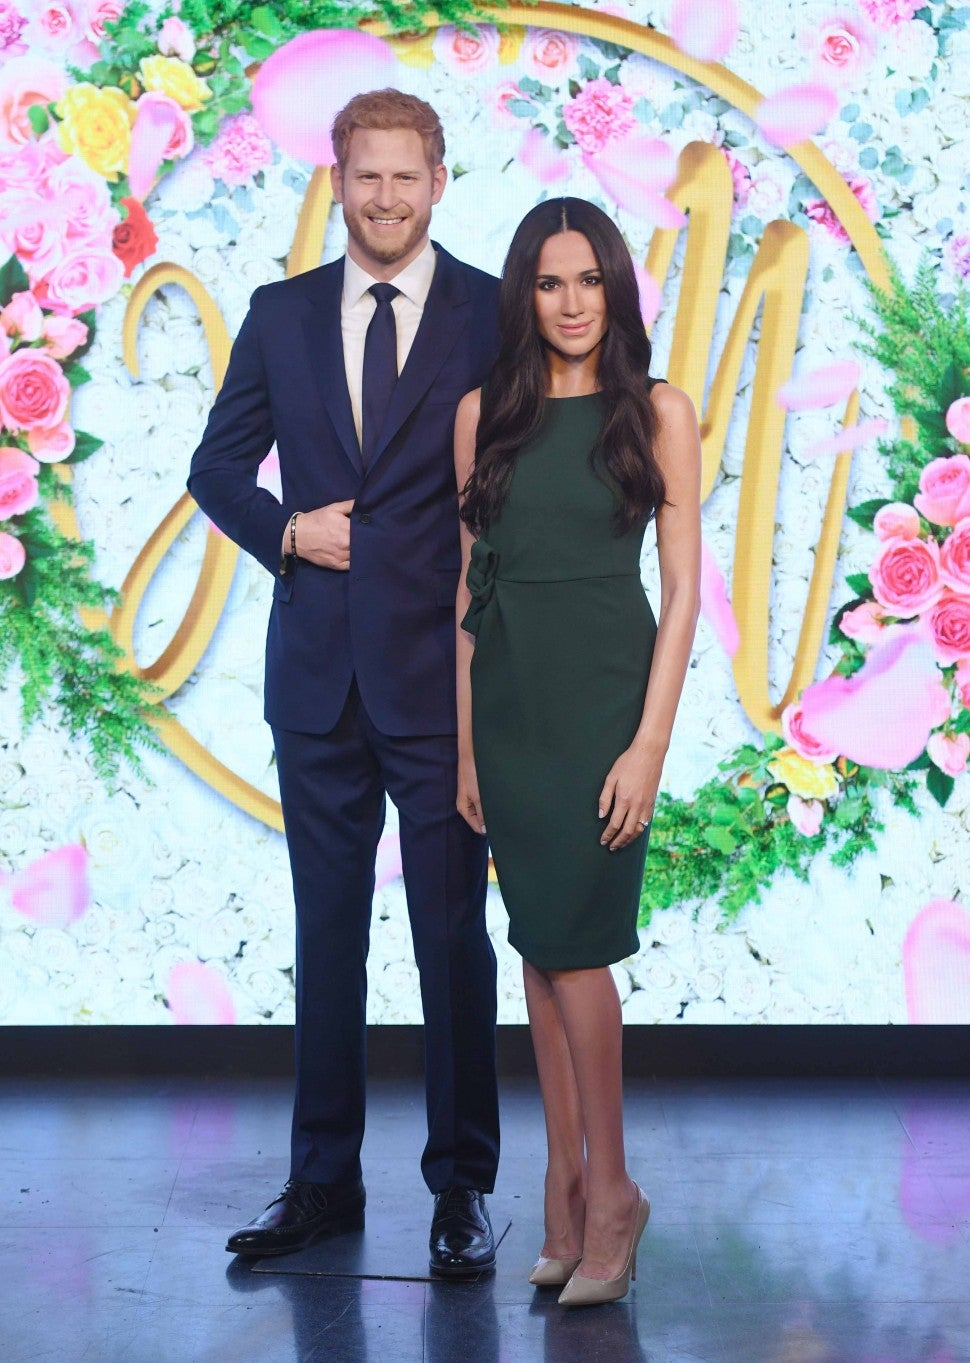 meghan_markle_wax_figure_gettyimages-956323248.jpg